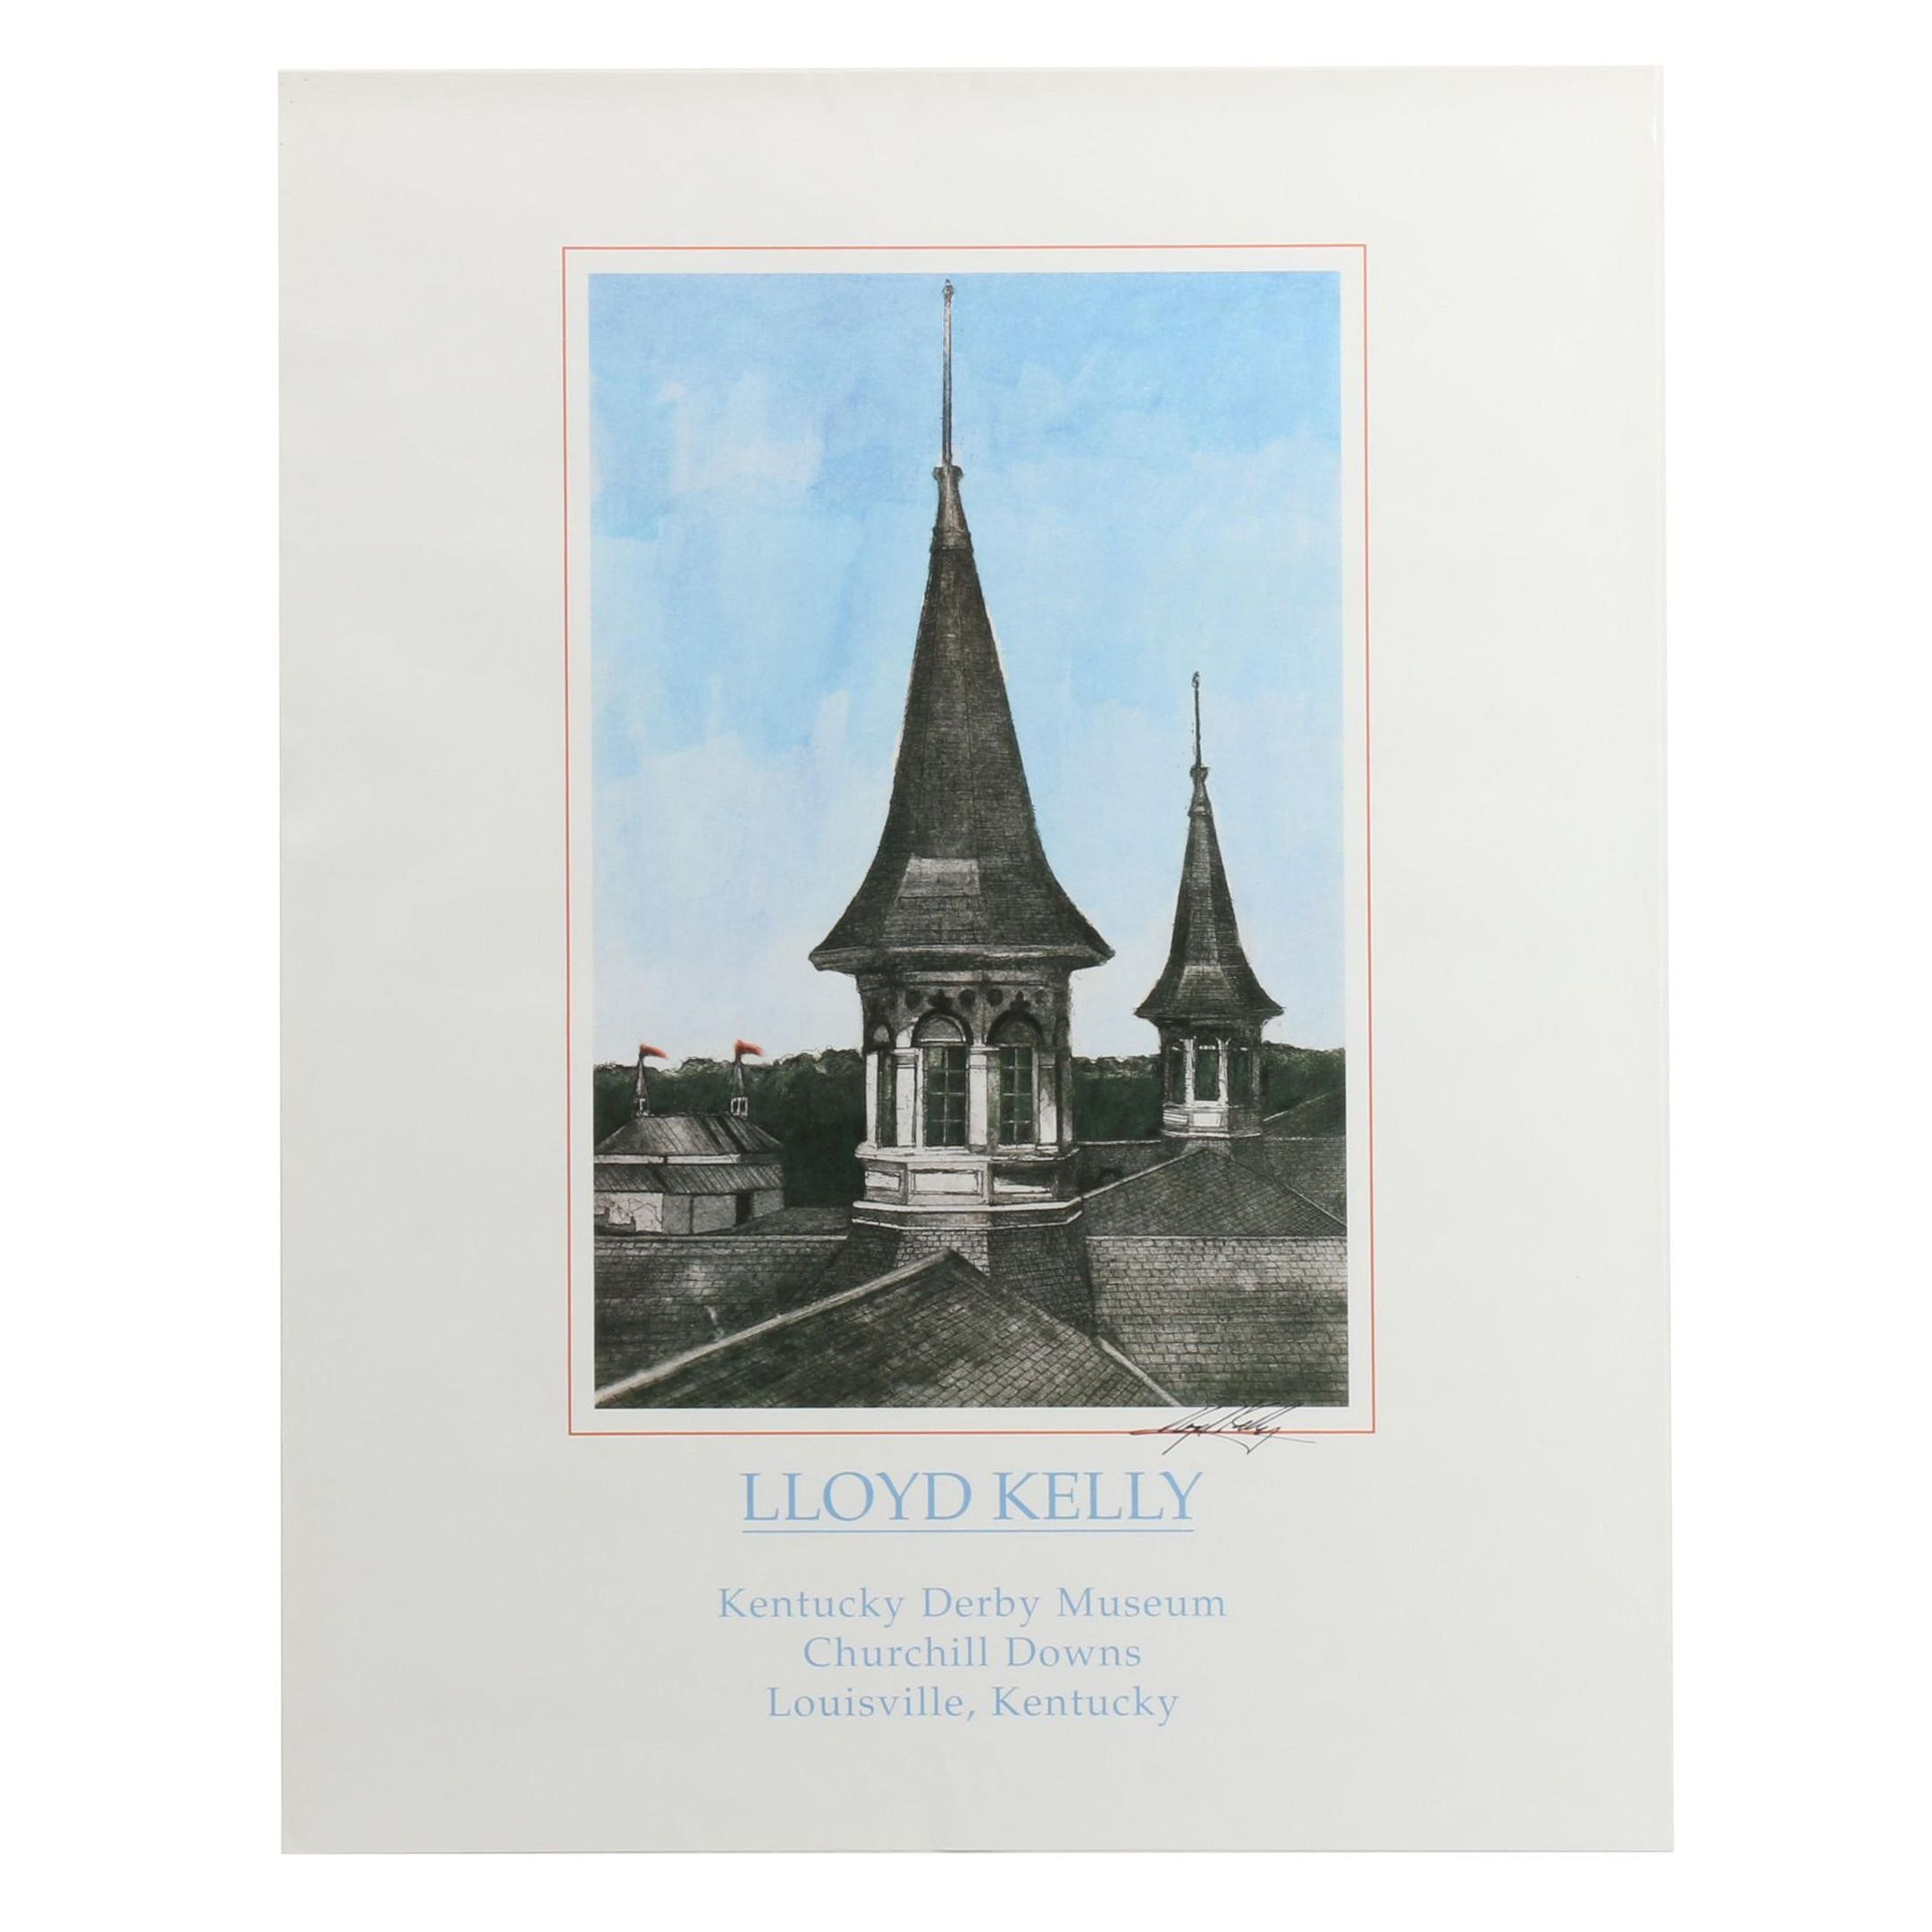 Artist Lloyd Kelly Signed Churchill Downs Art Poster